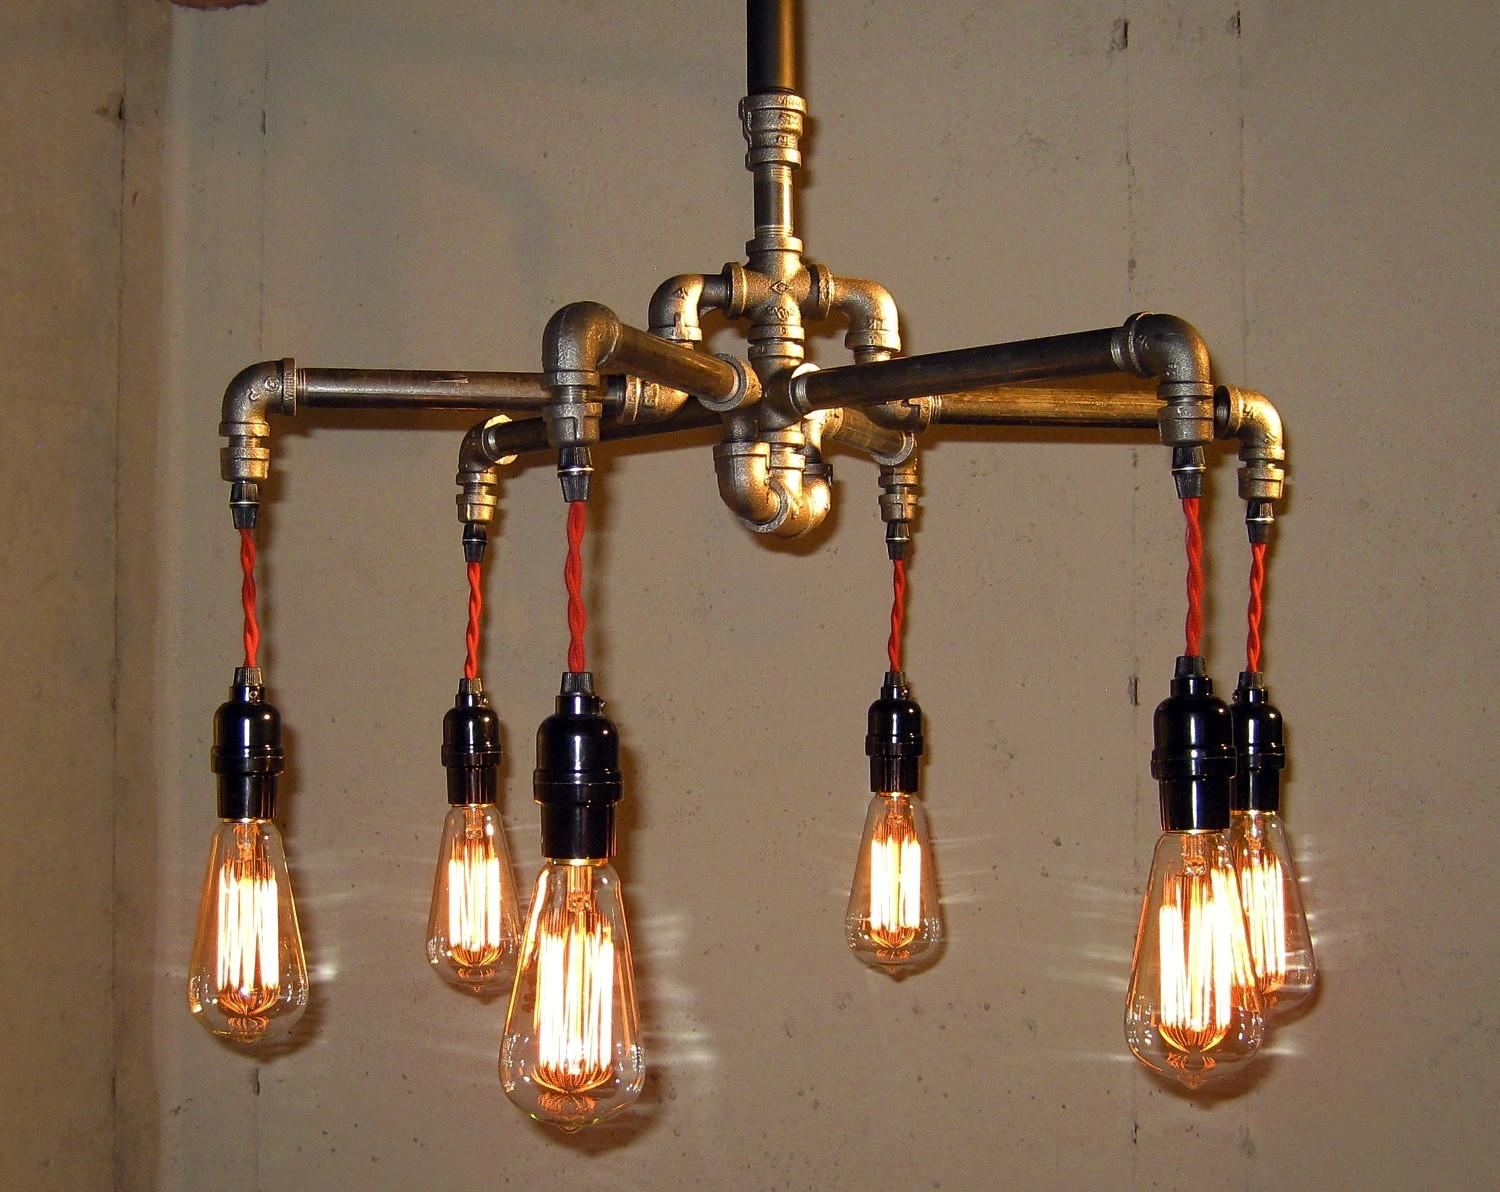 Grownup Halloween Cor Steampunk Lighting All Day